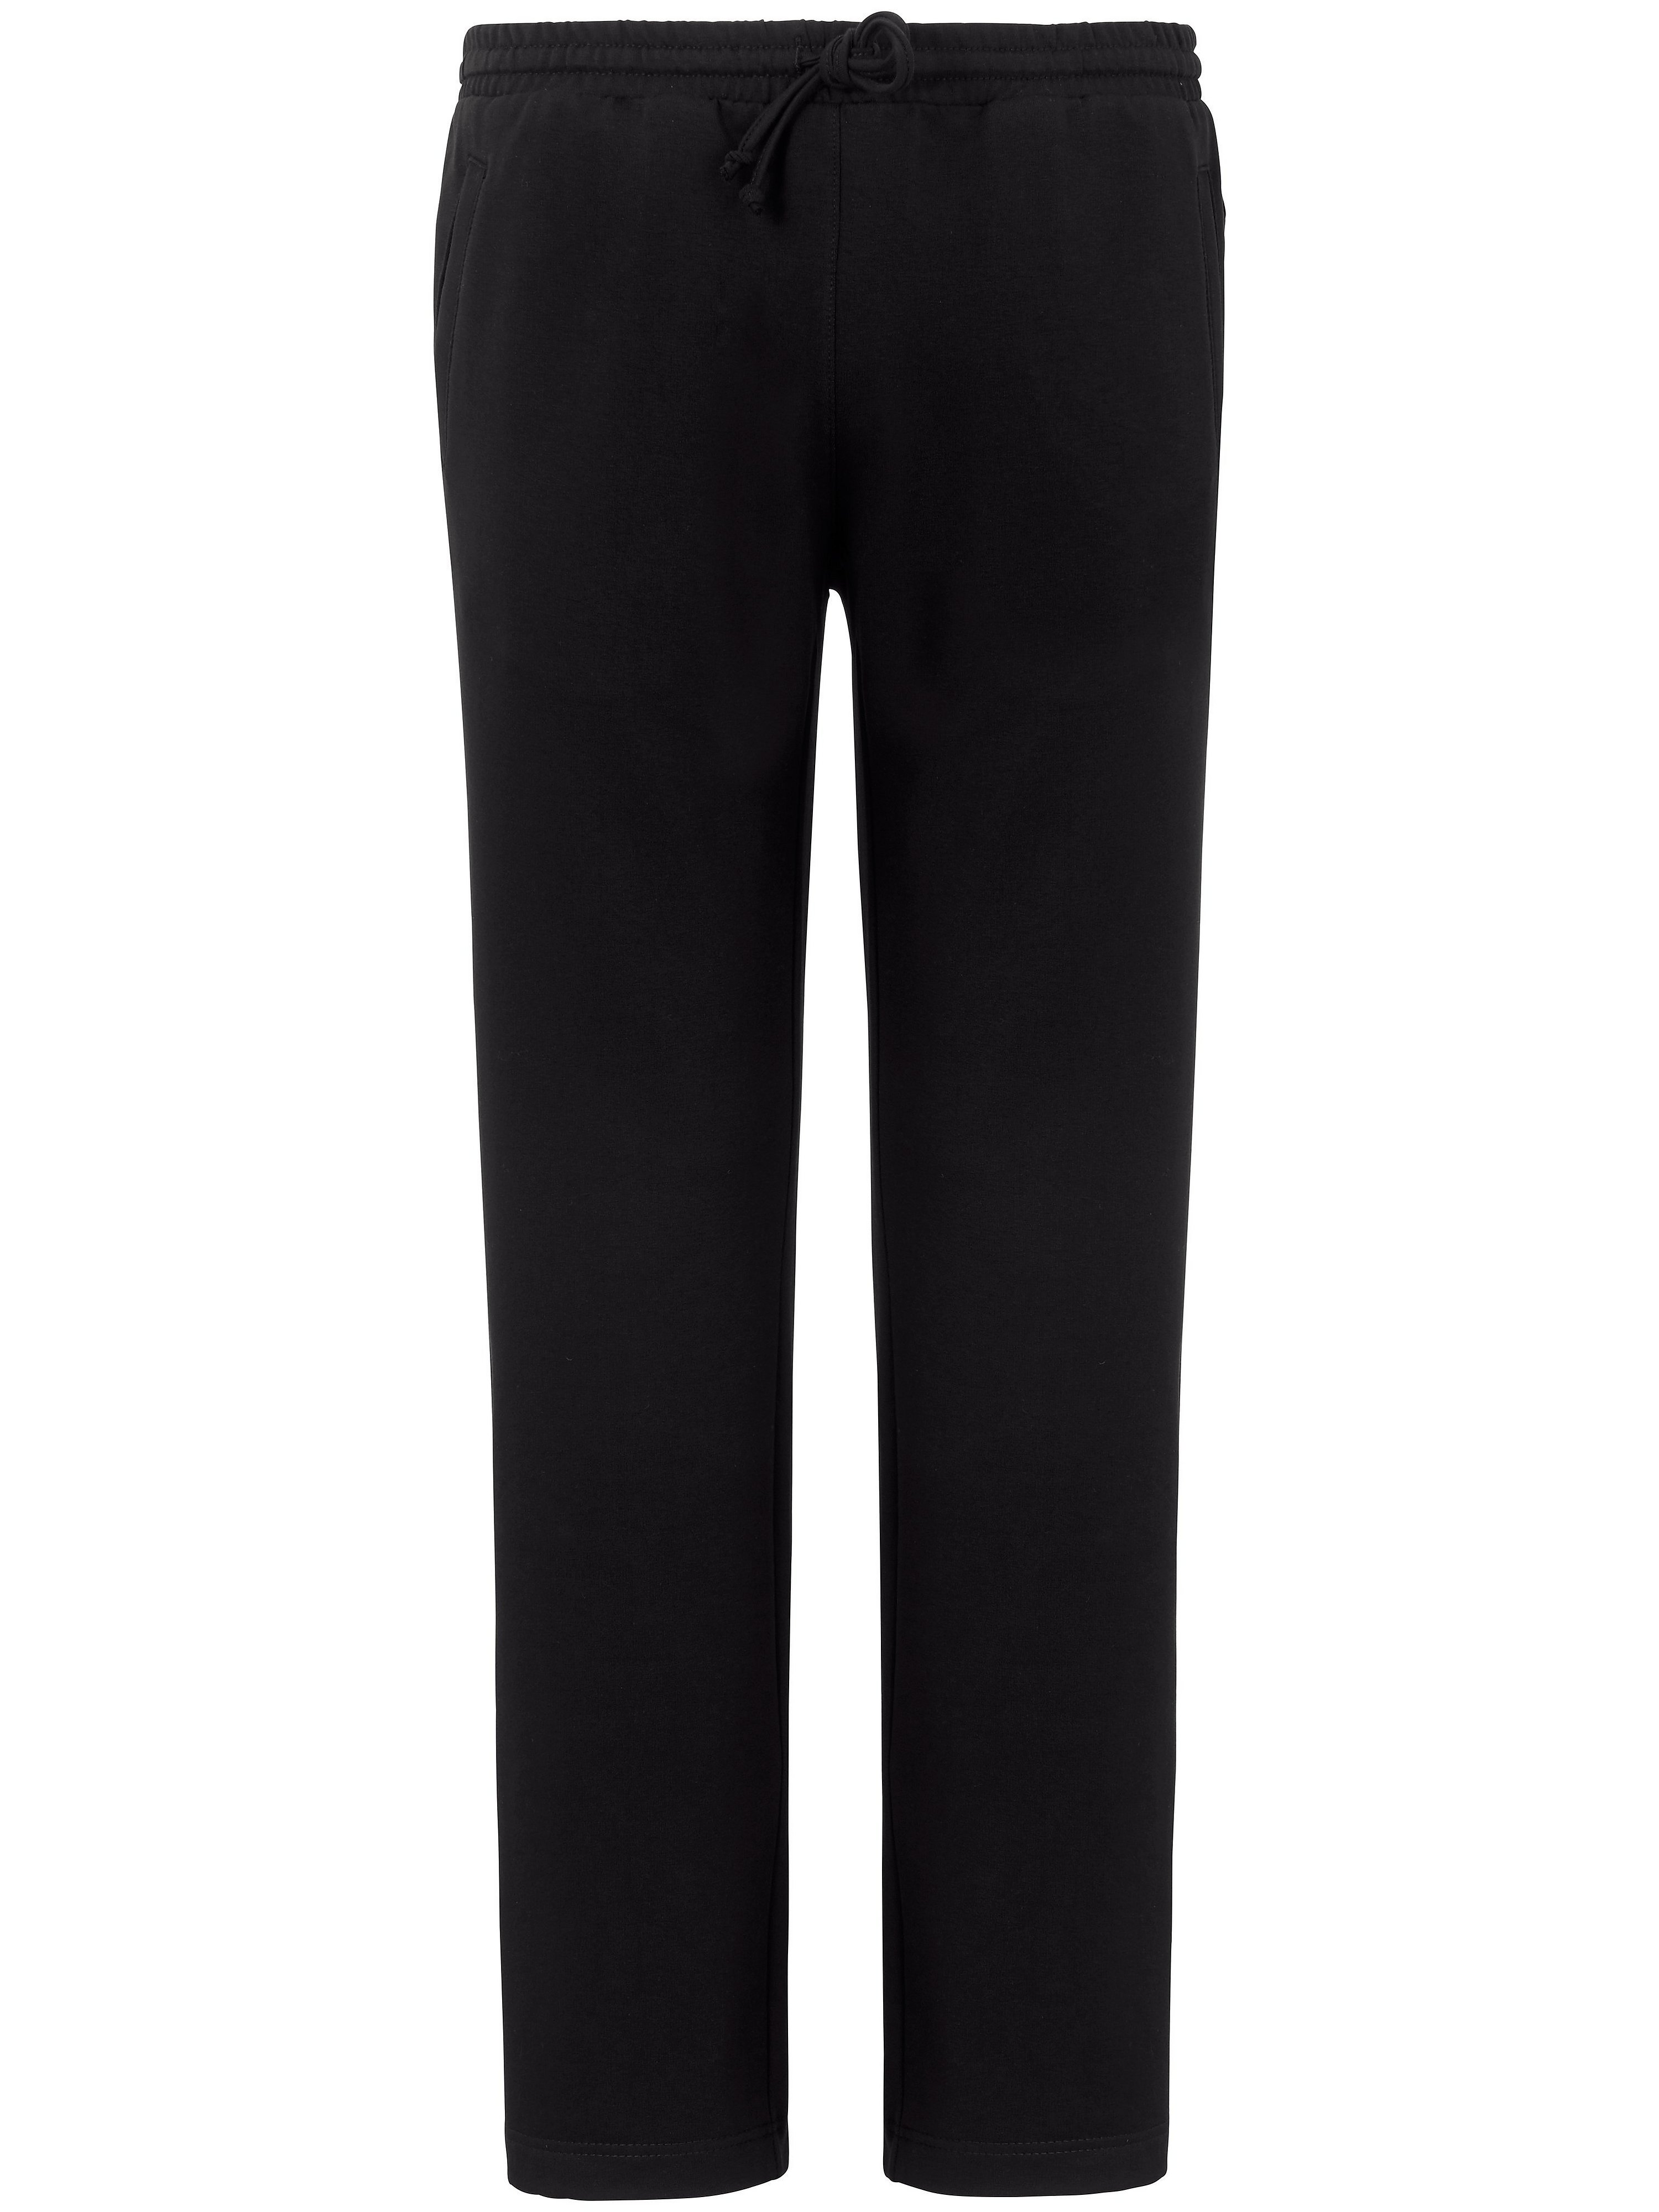 Le pantalon jogging  Authentic Klein noir taille 26